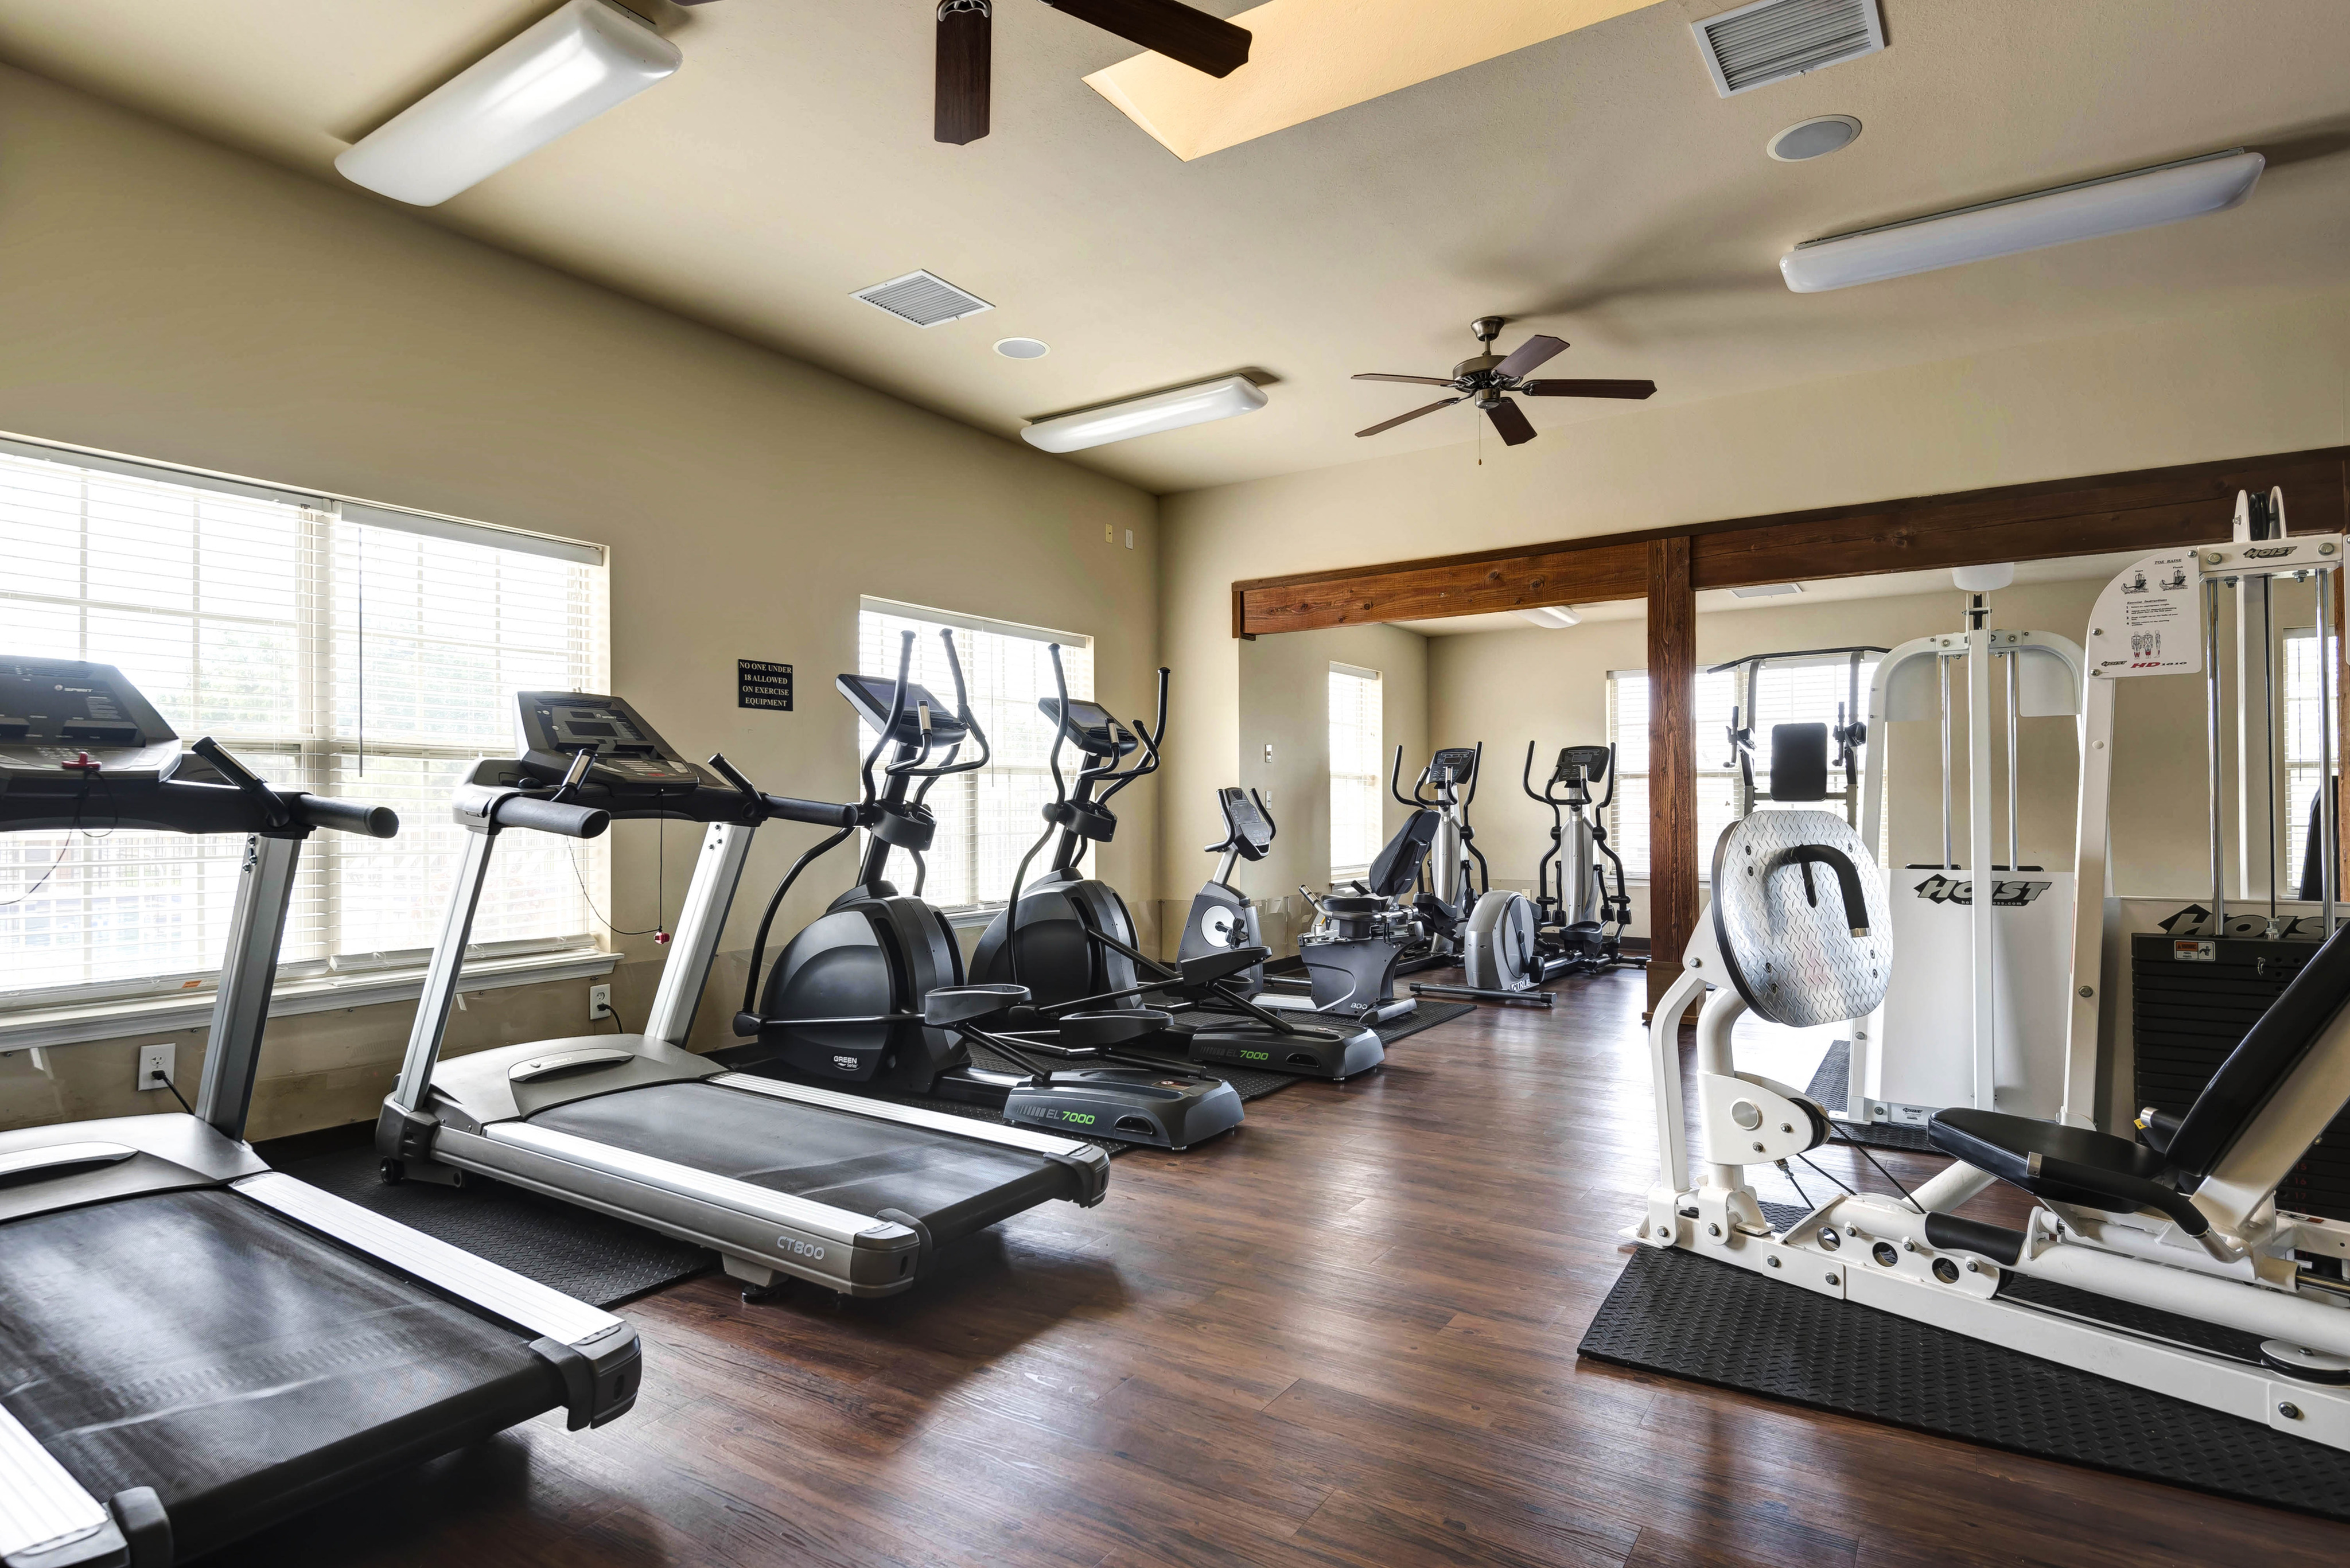 Coryell Courts fitness center with cardio equipment